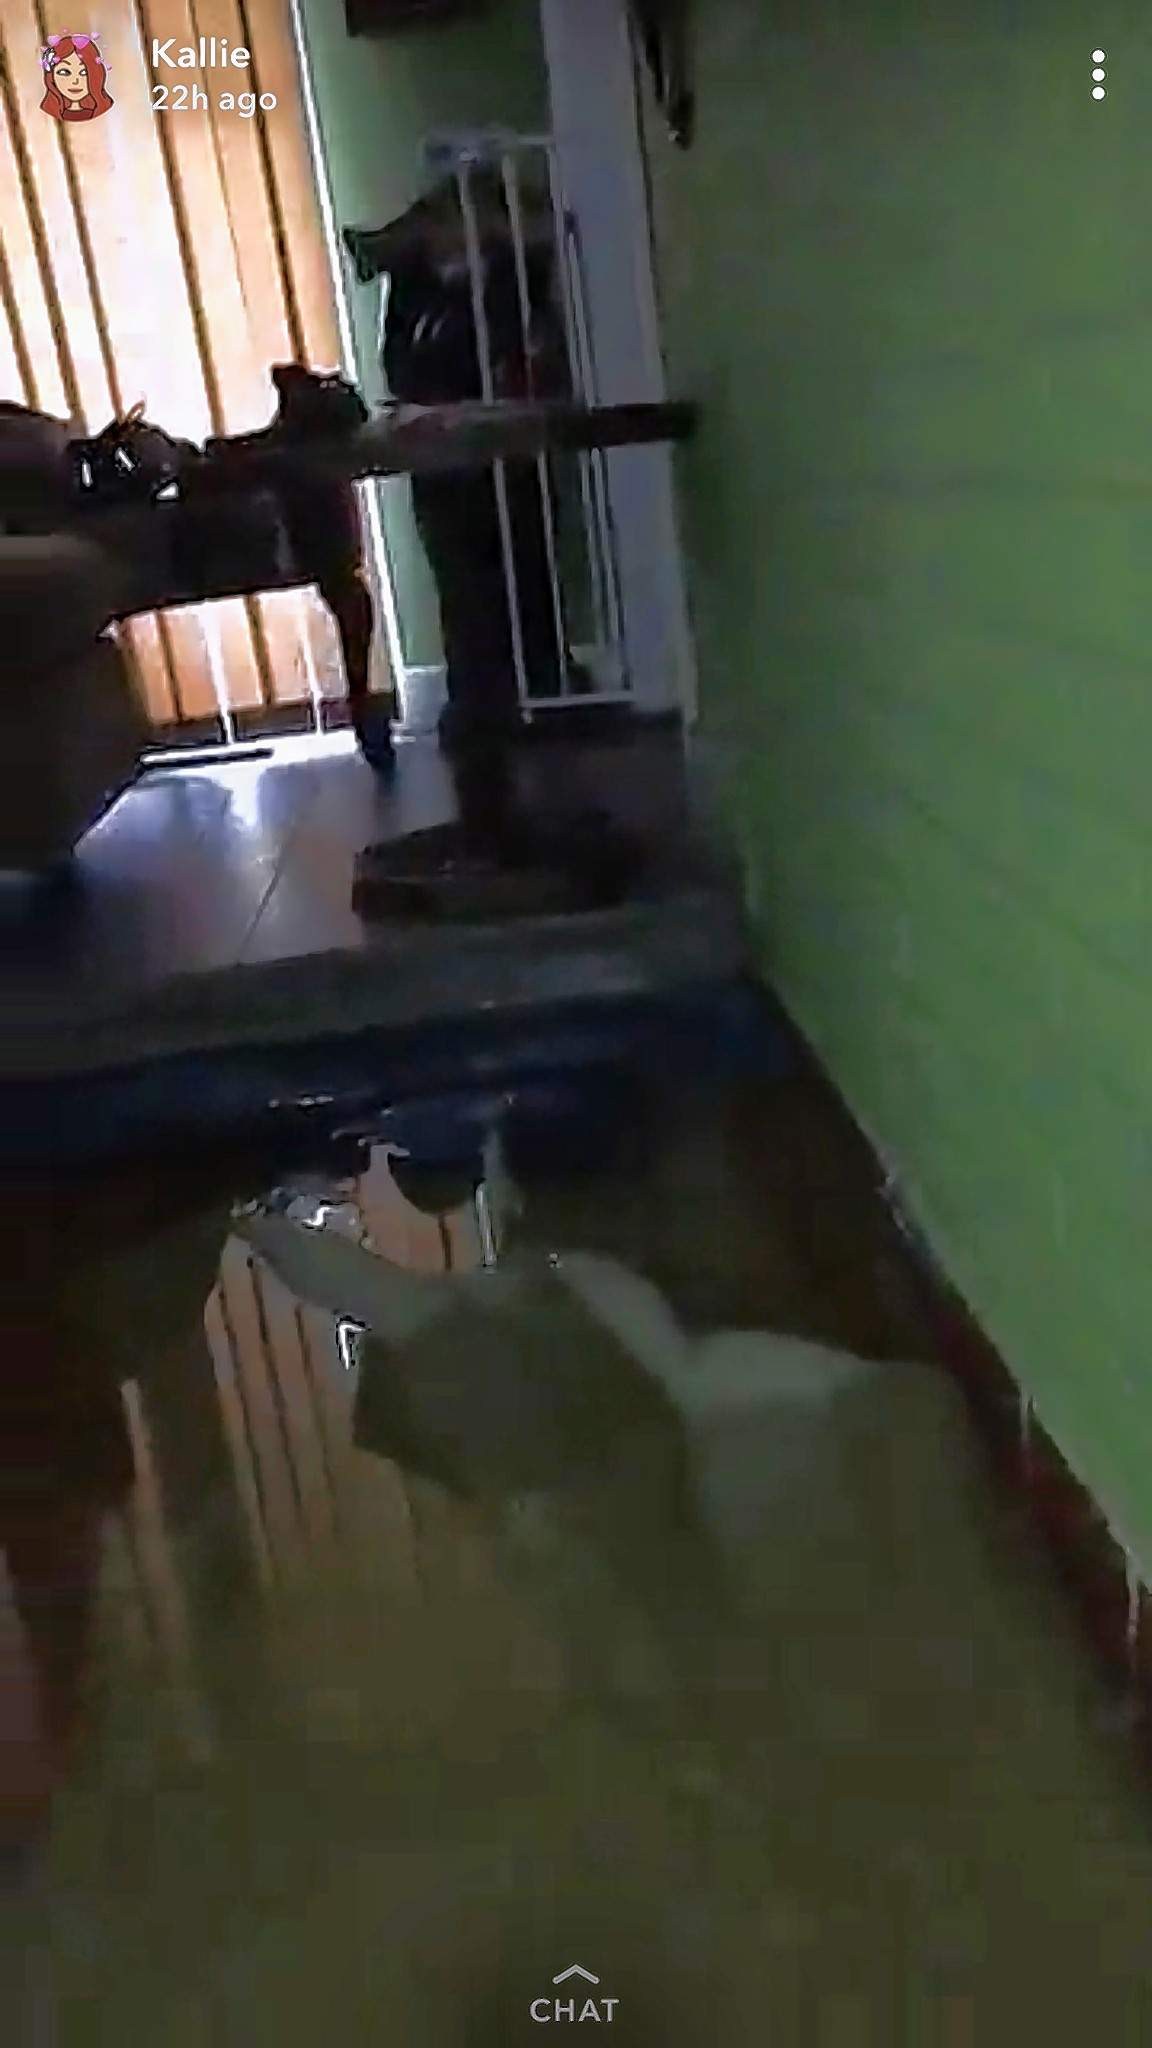 Flood waters left after Hurricane Florence passed through Dillon, South Carolina, fill the home of southern Illinois natives Brooke and Charles Wright.